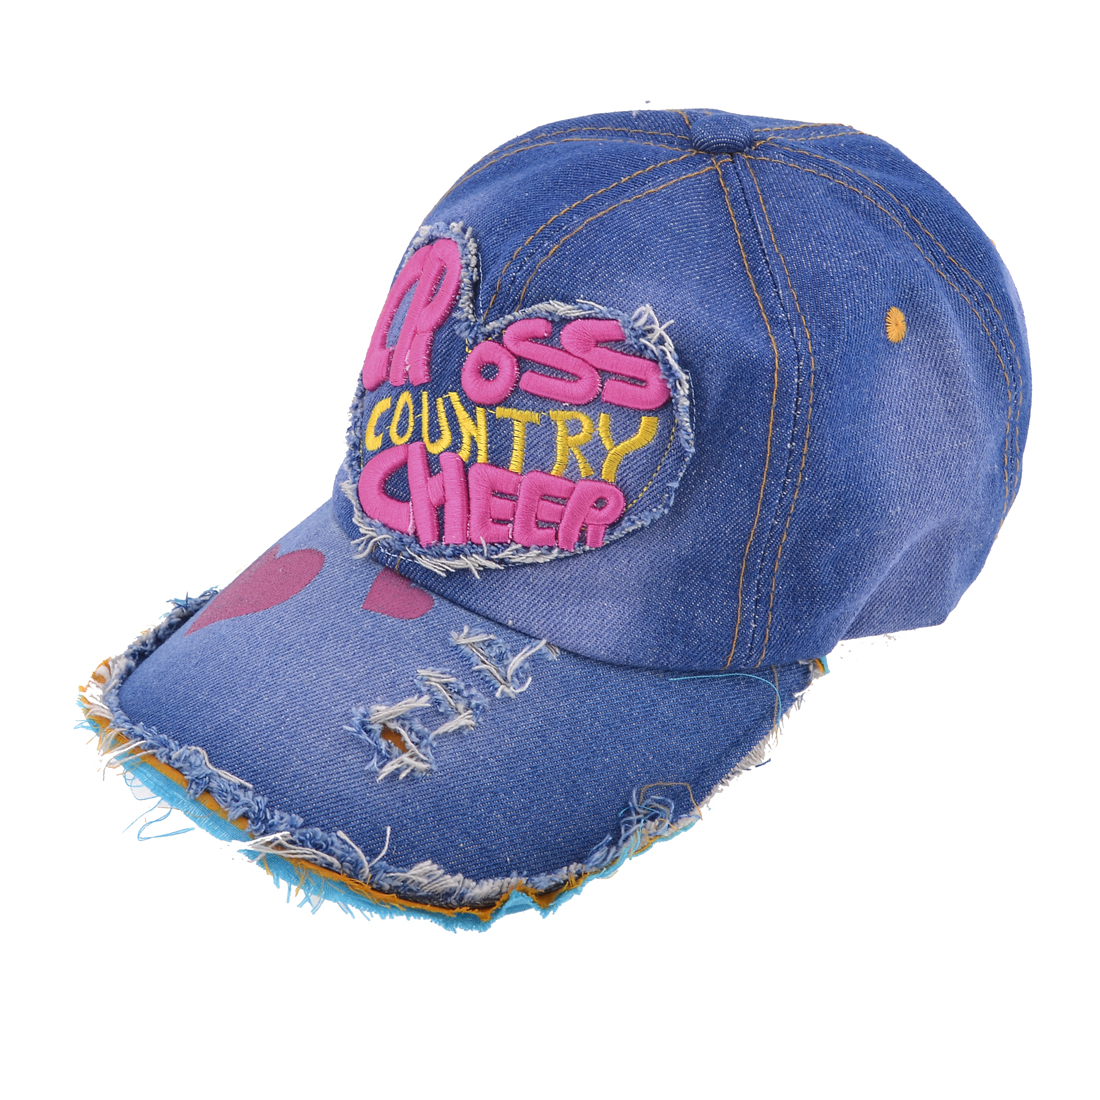 Man Letter Print Blue Denim Baseball Ball Cap Hat